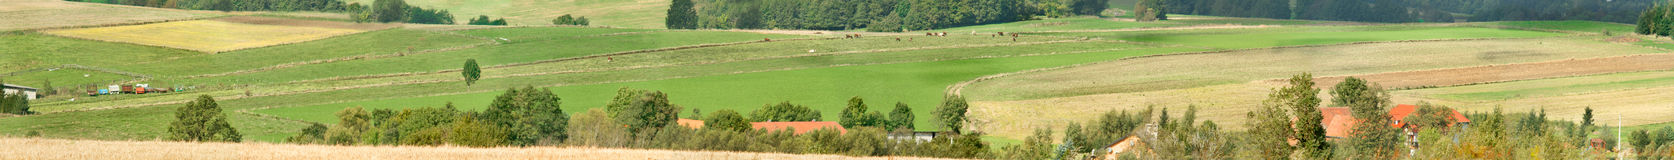 Panorama of cows on a meadow between plowed fields in the heels Royalty Free Stock Image